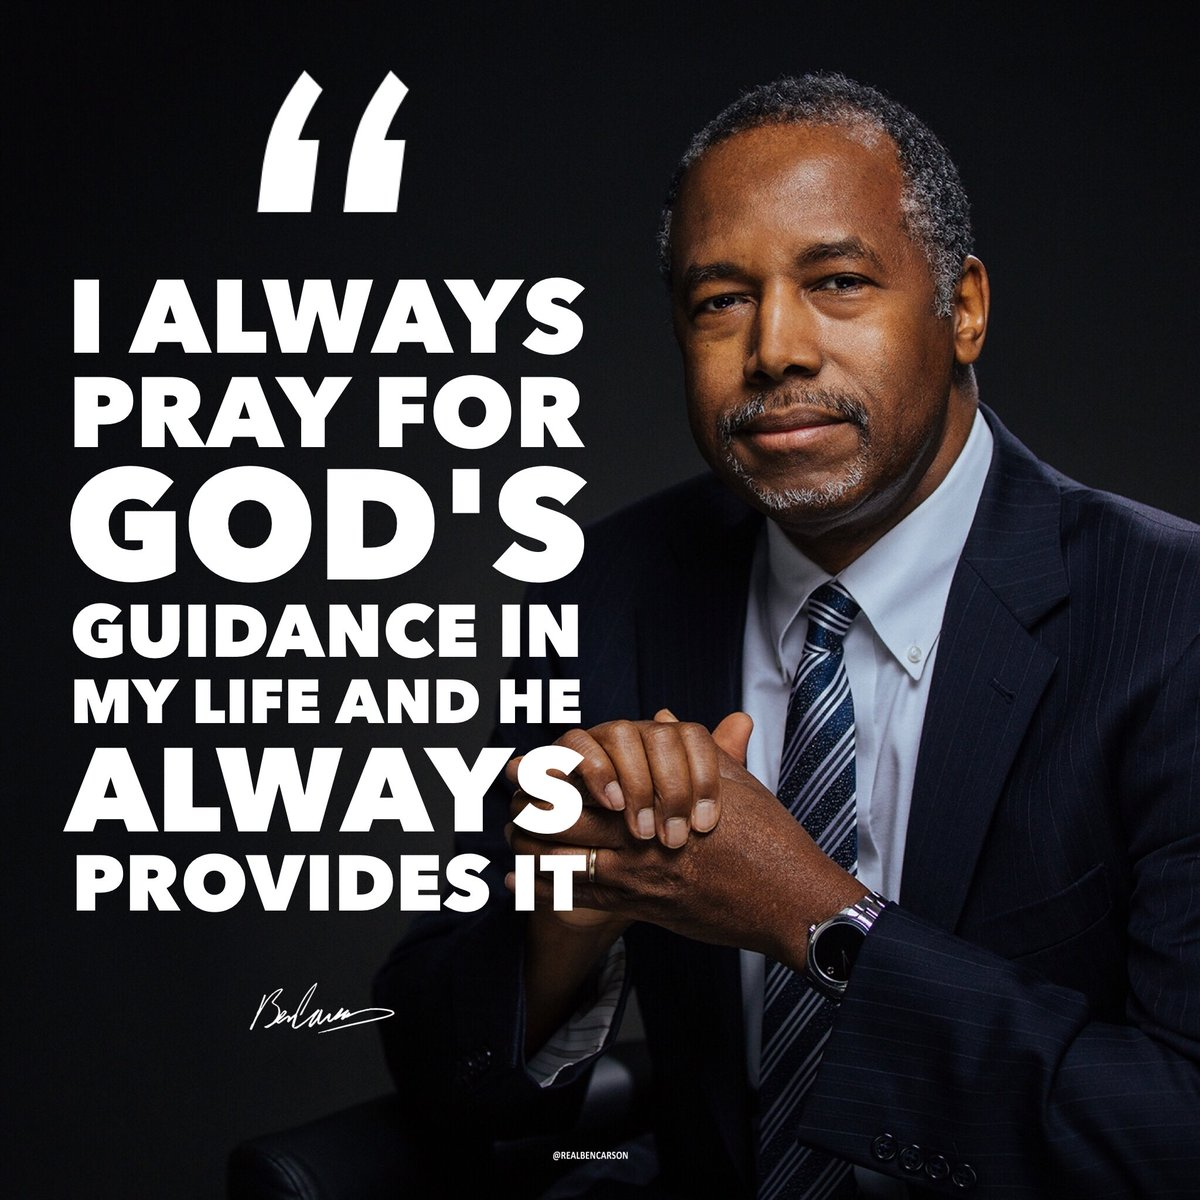 I always pray for God&#39;s guidance in my life and he always provides it ~ @RealBenCarson  #wednesdaywisdom <br>http://pic.twitter.com/jf1jtsKUcB